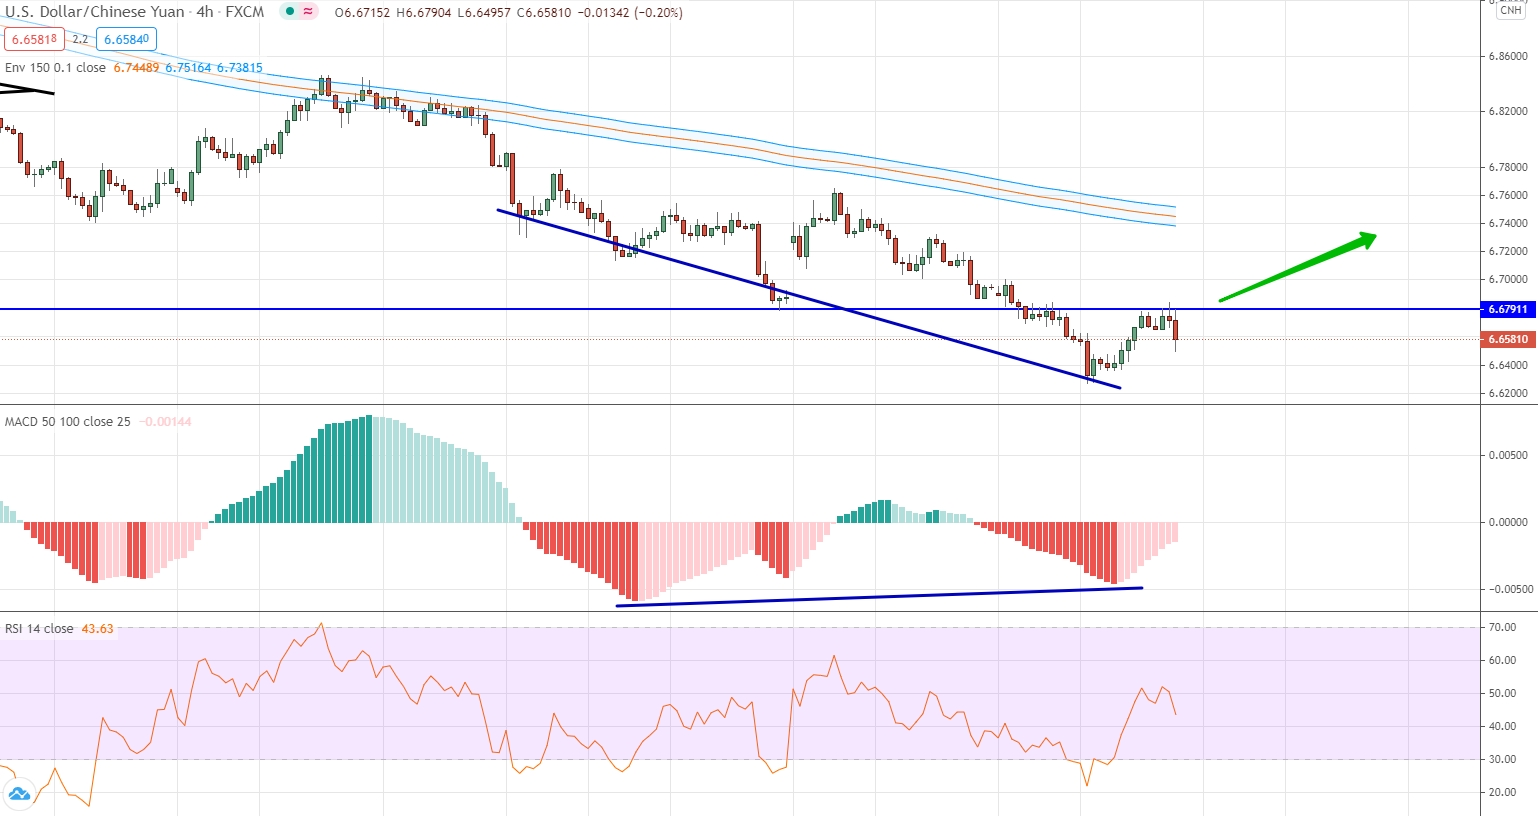 analysis of USD/CNH by moving averages, RSI and MACD